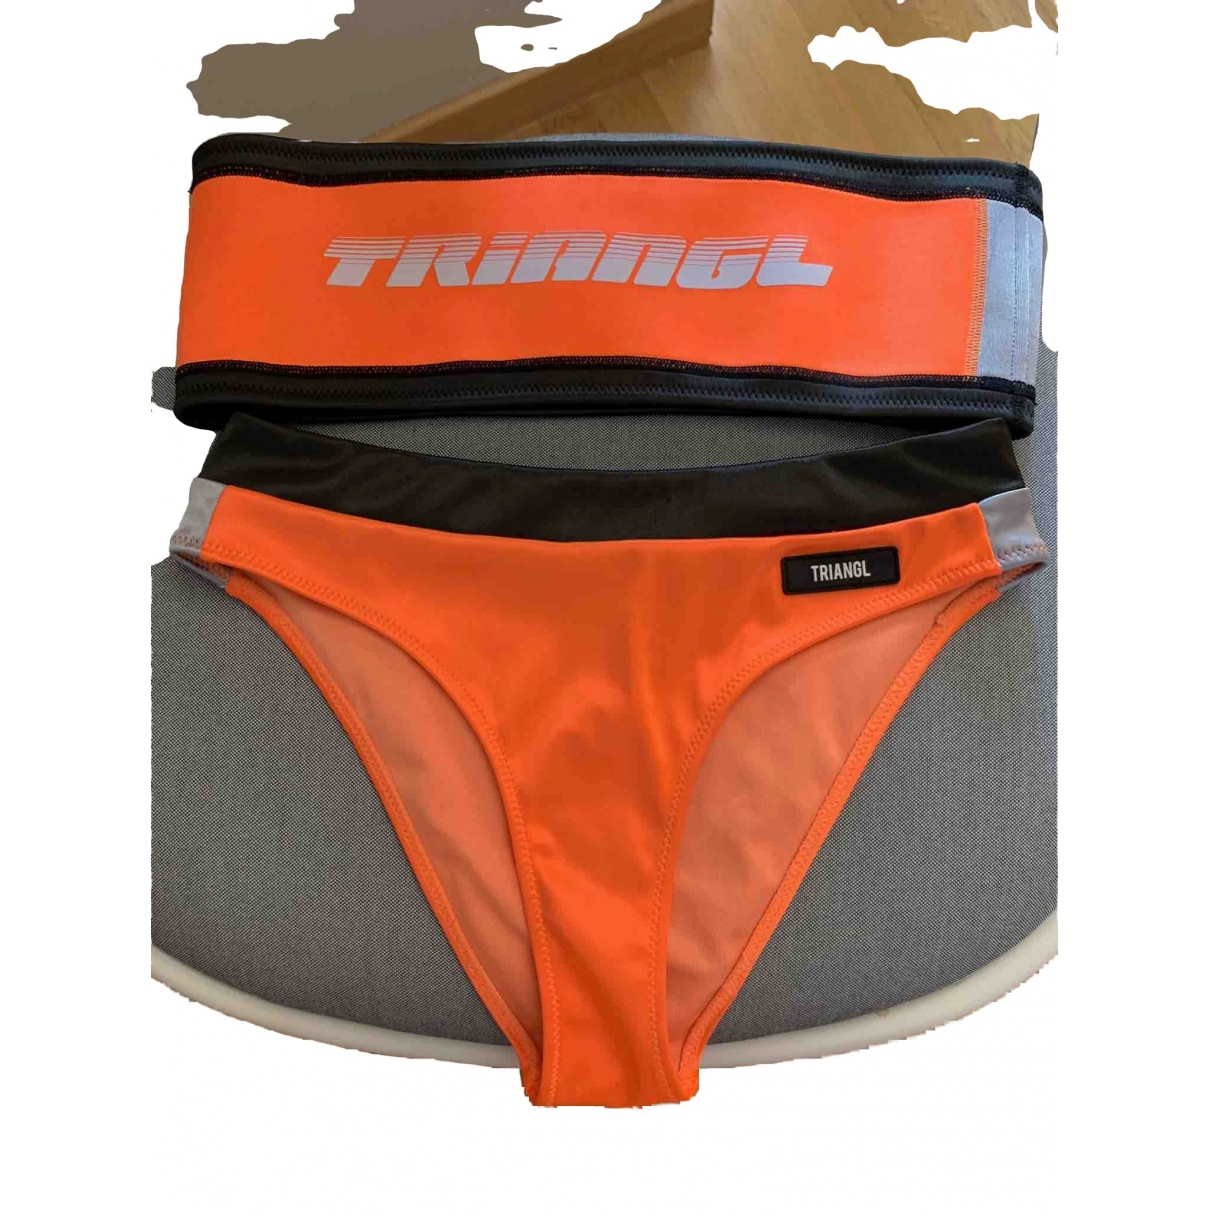 Triangl \N Orange Swimwear for Women M International